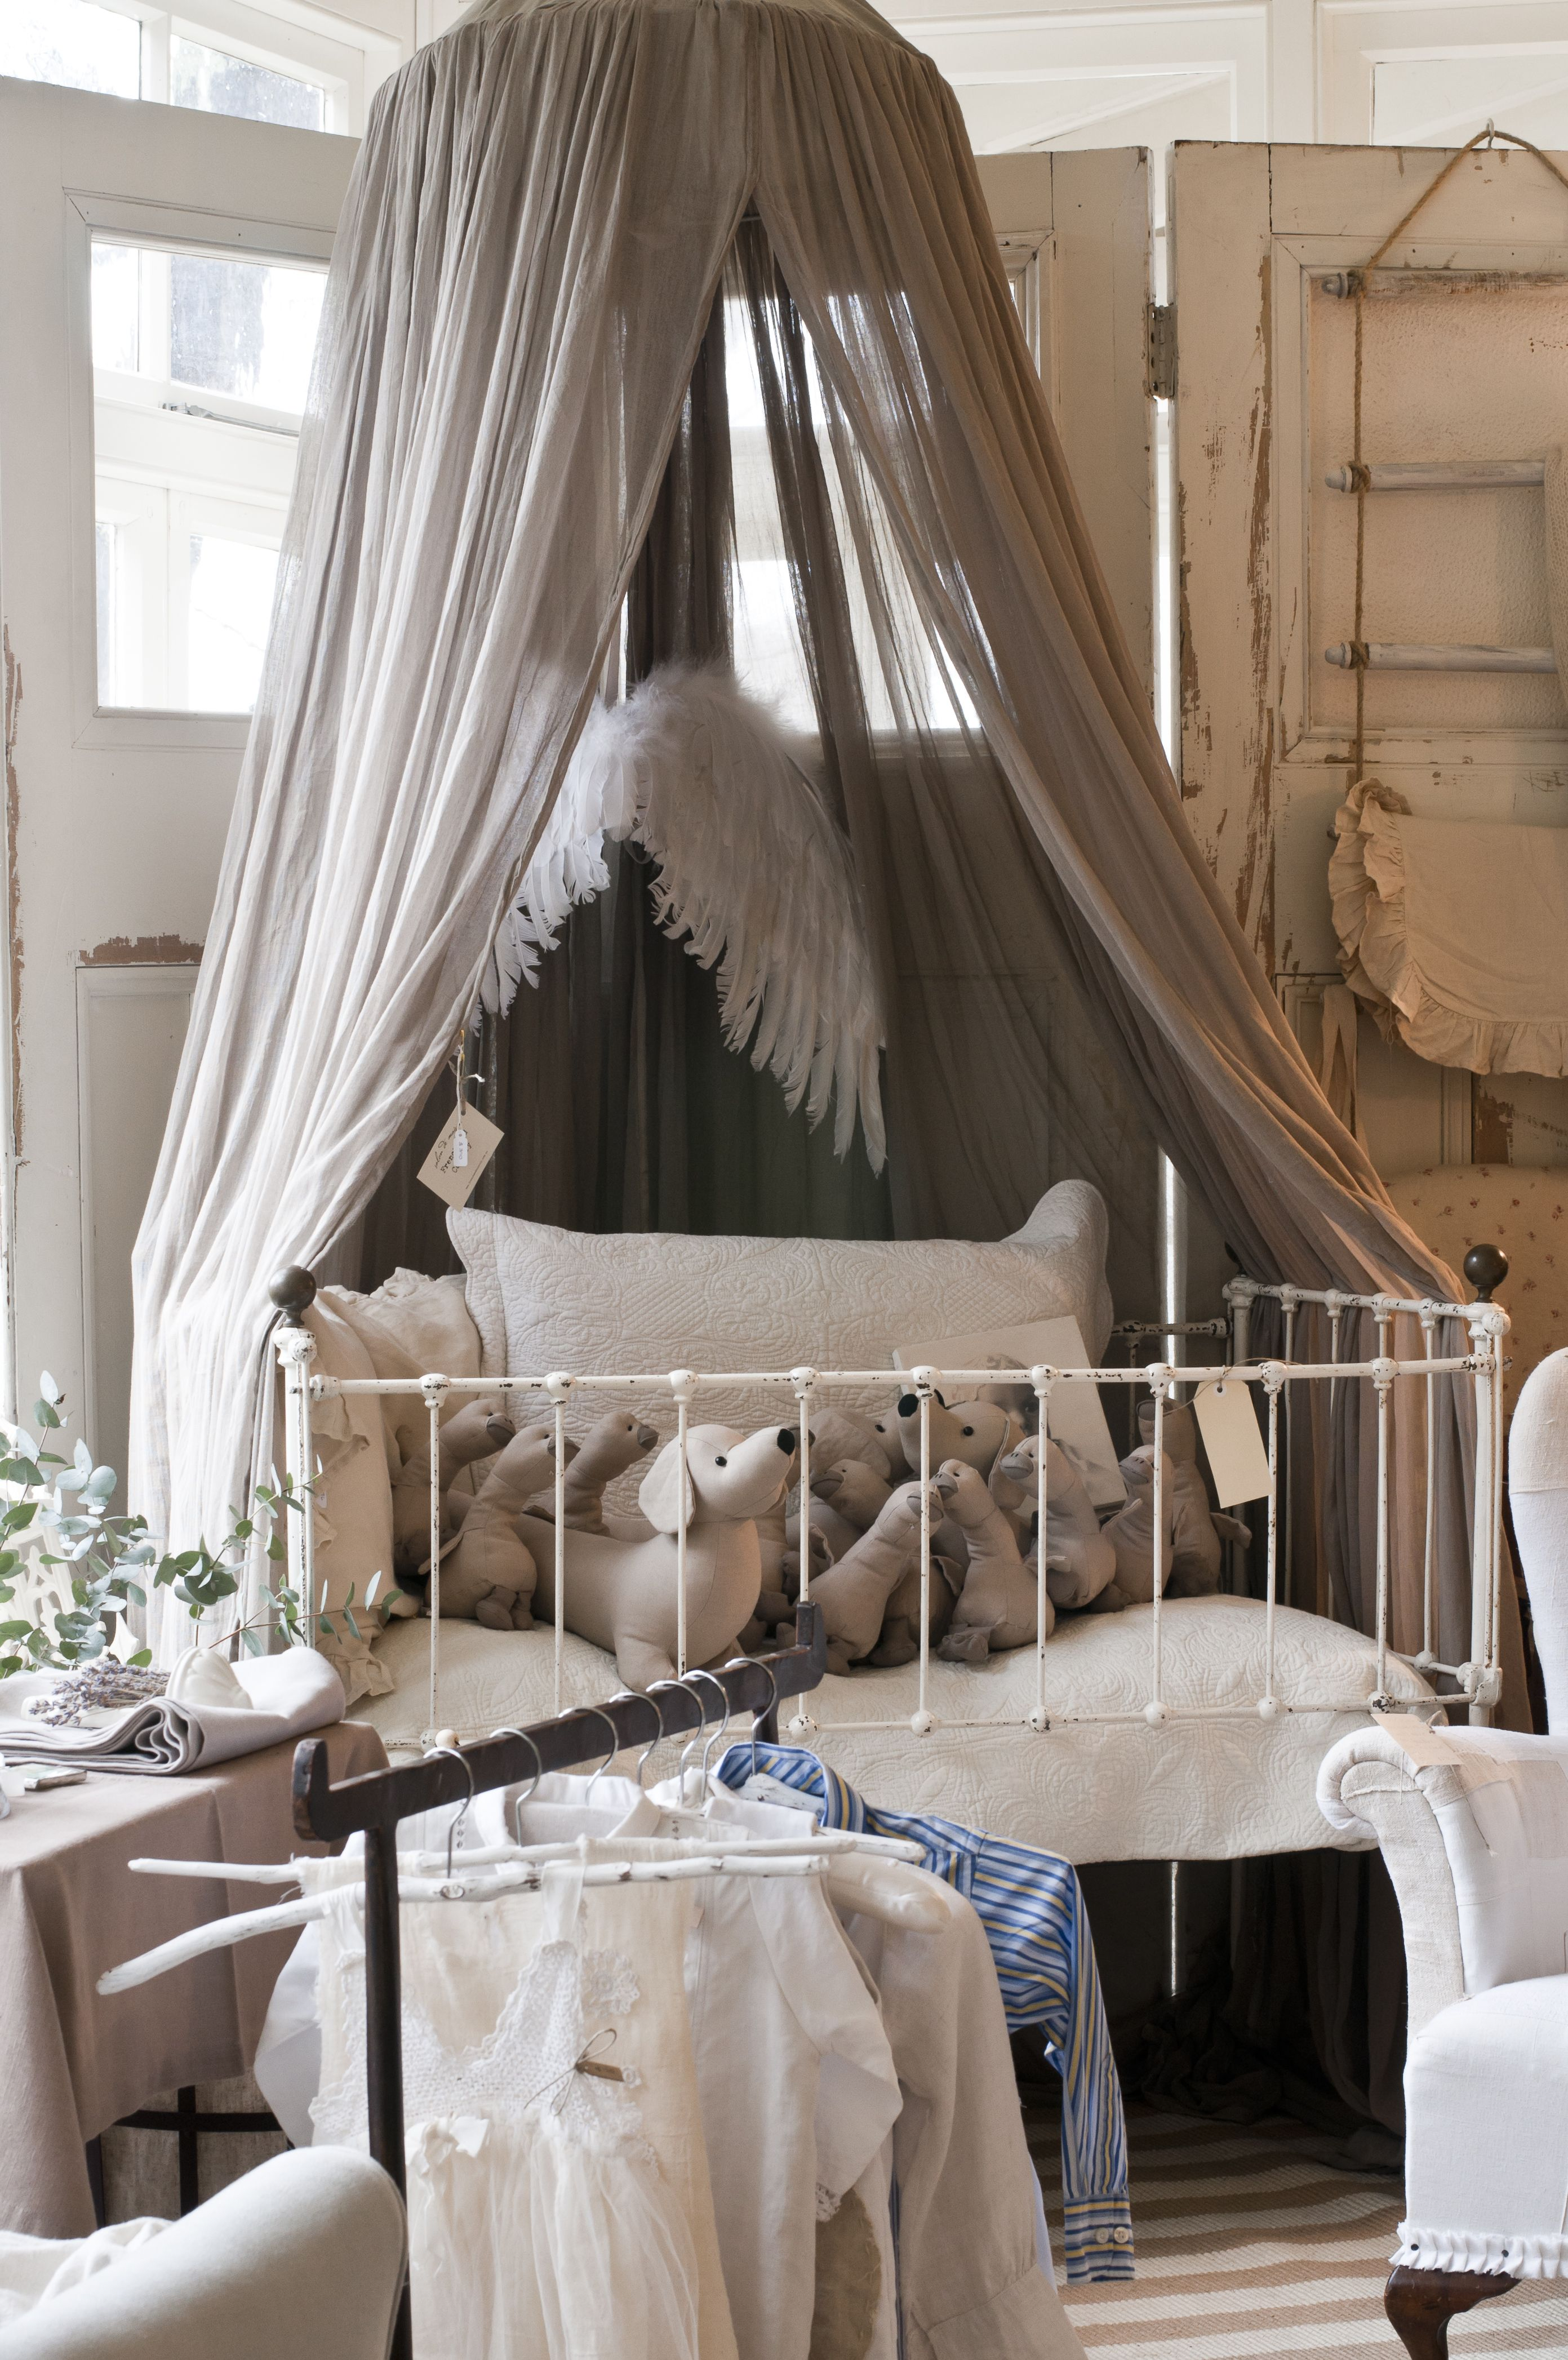 Italian dreamy mosquito net over vintage cot French u0026 Country at Hopewood & Italian dreamy mosquito net over vintage cot French u0026 Country at ...